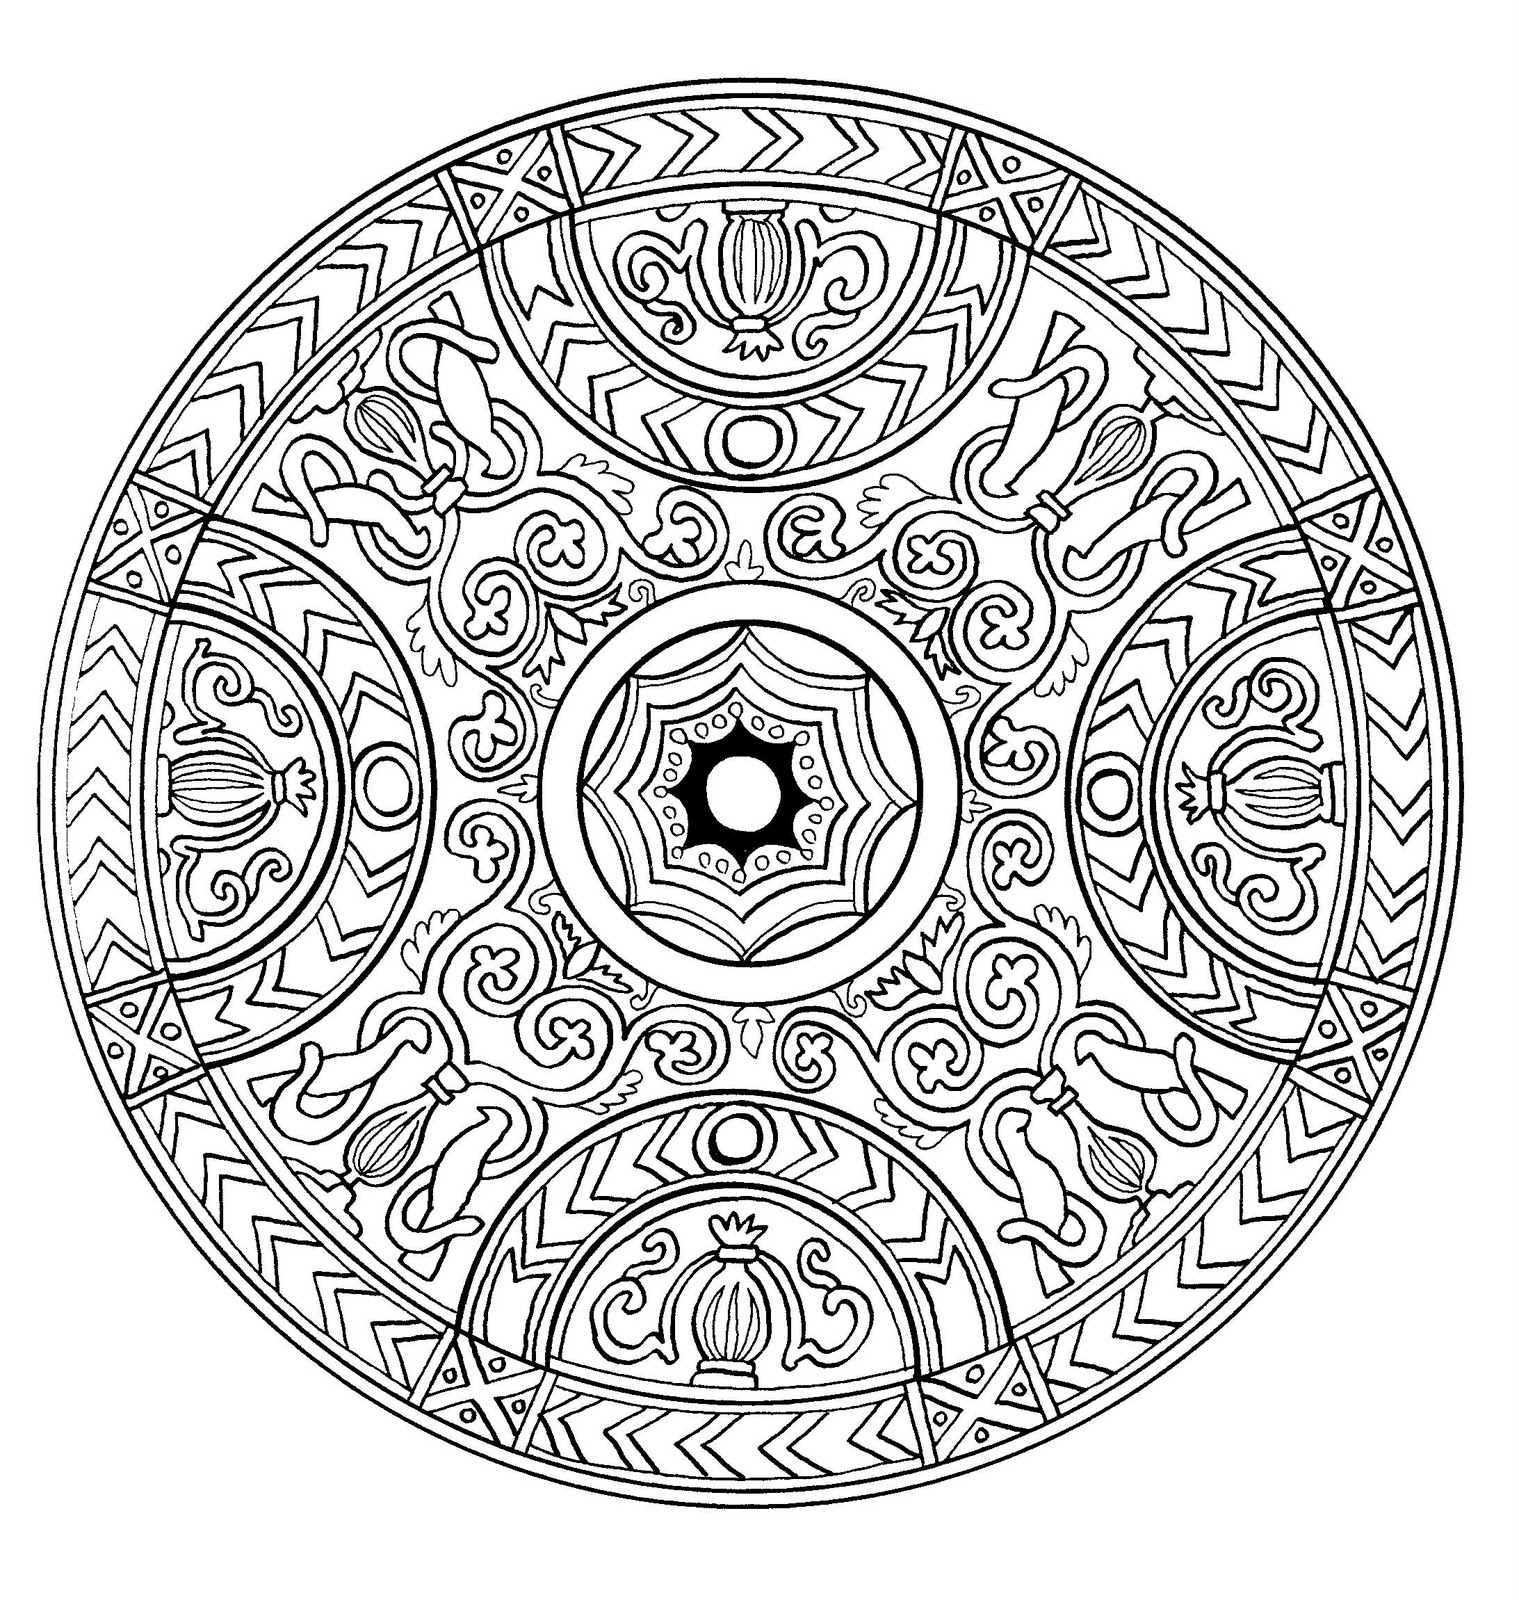 Mandala drawing with an old style, making think of kings & queens